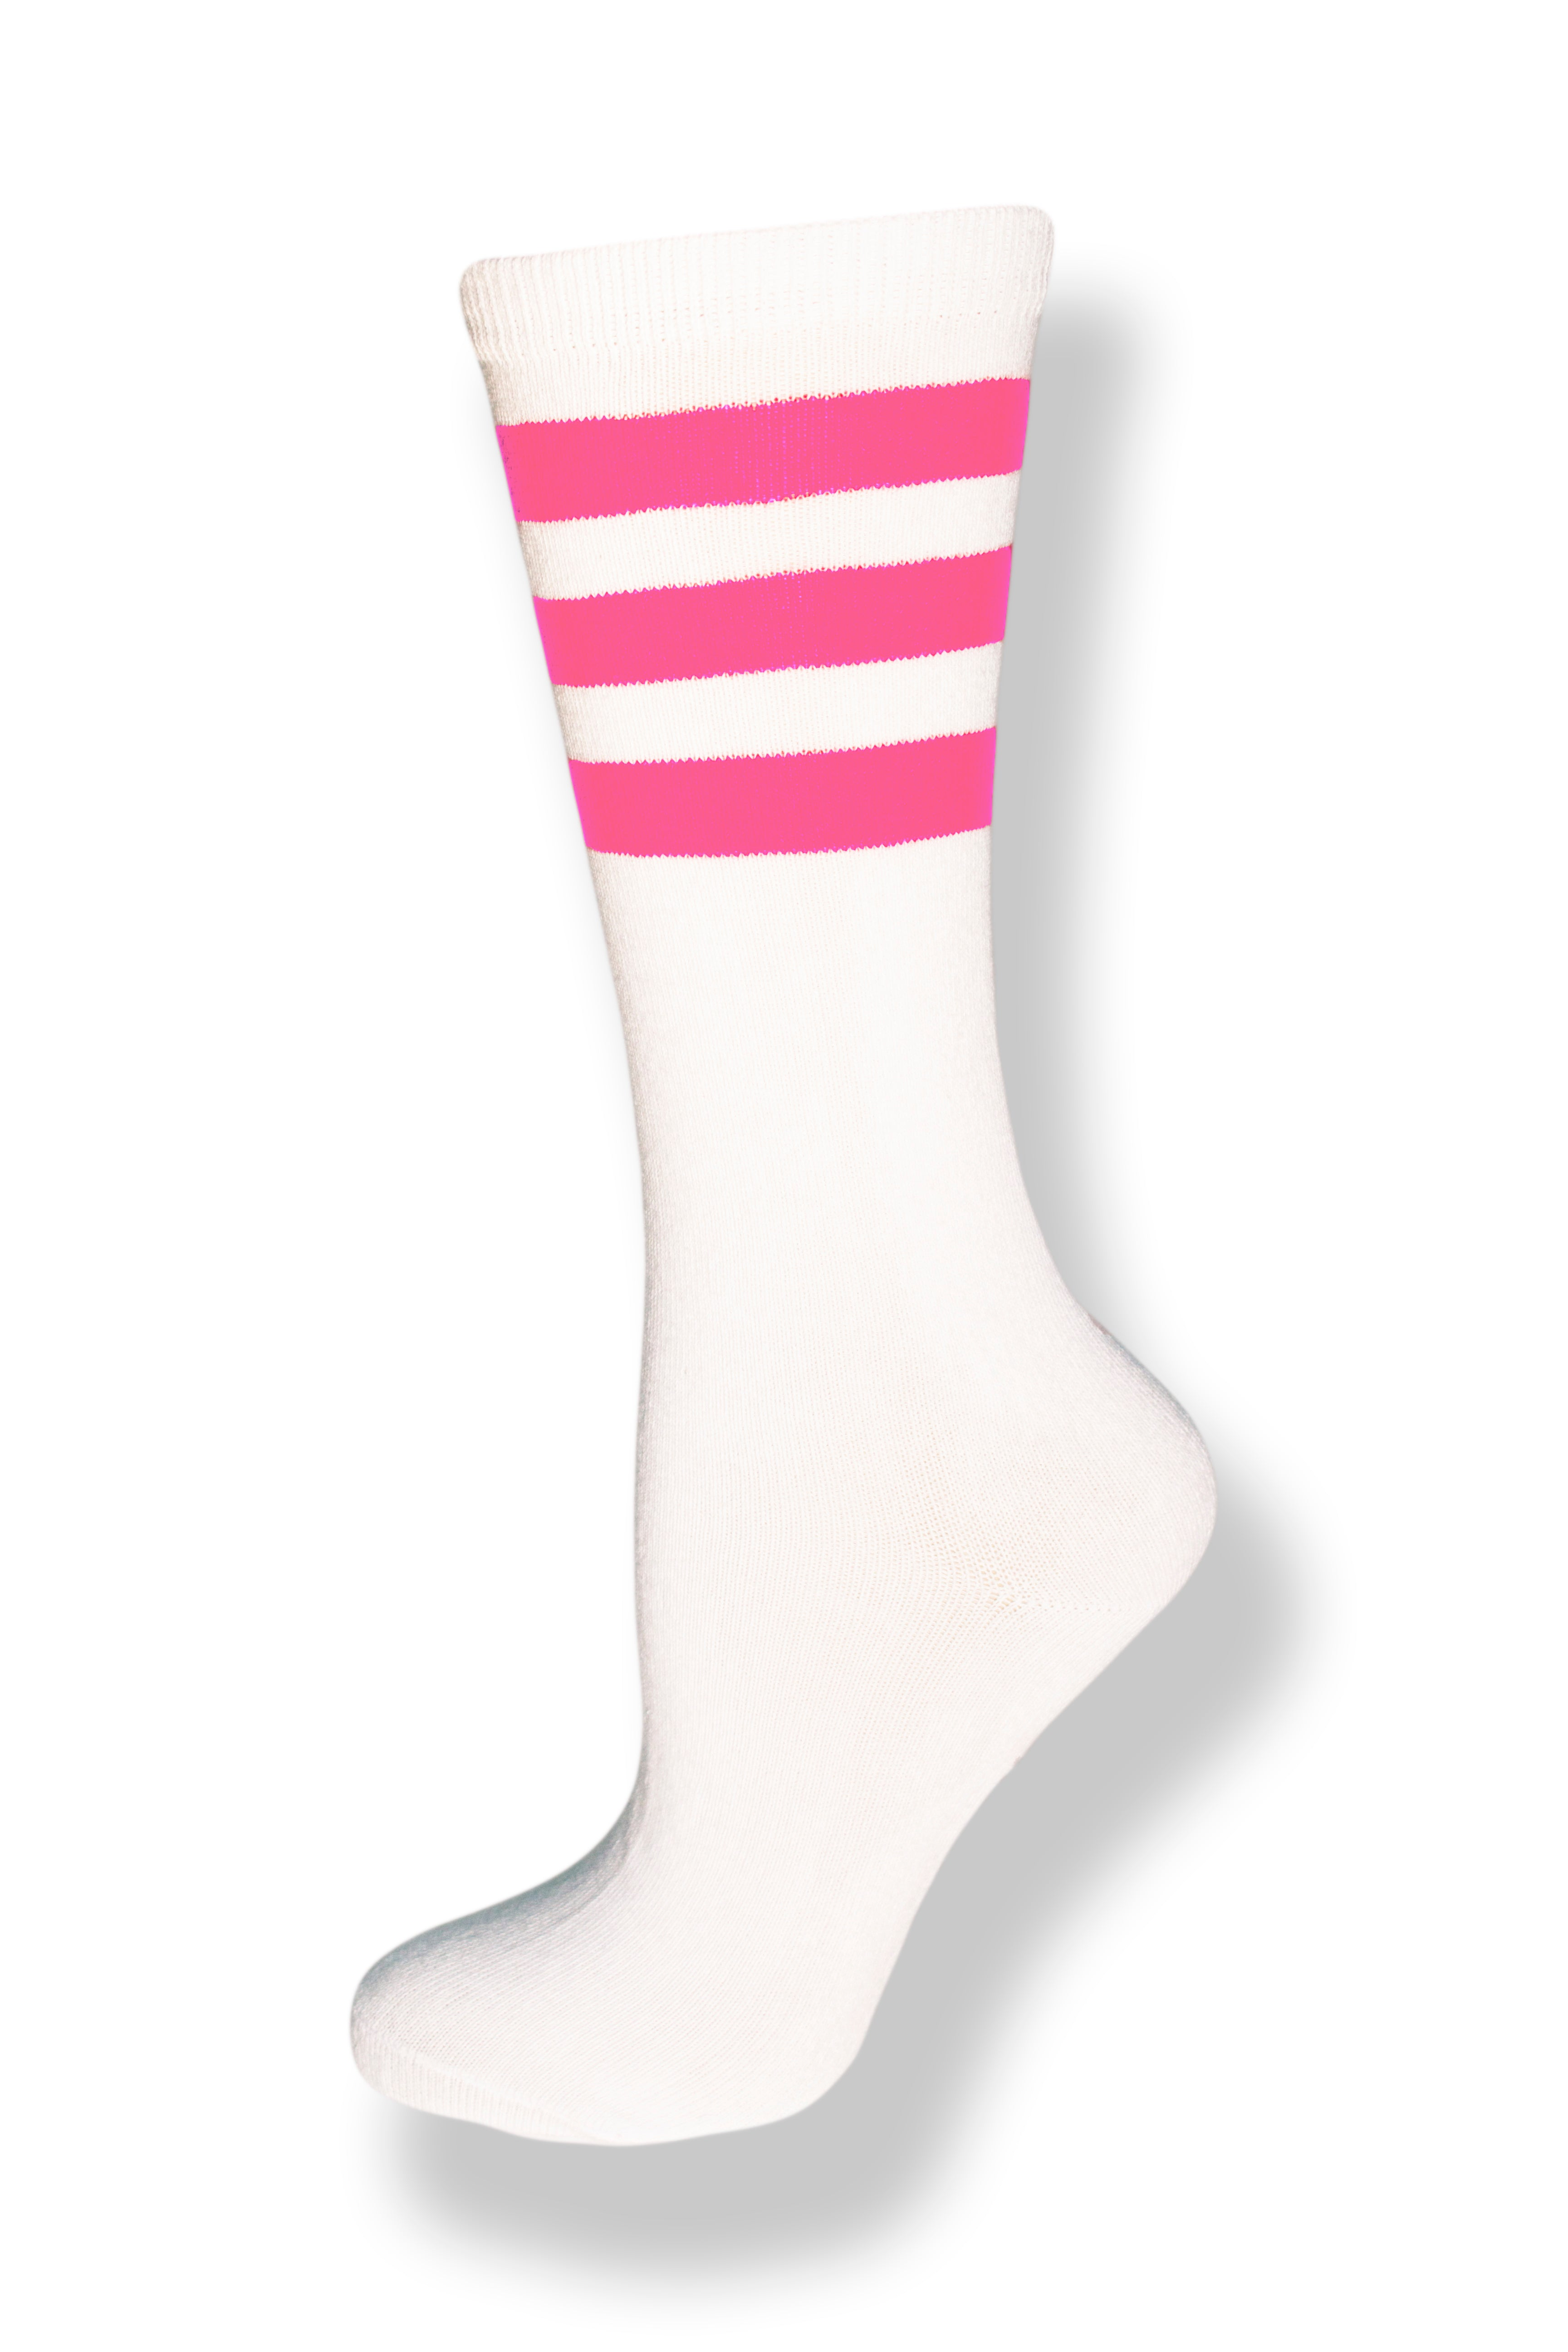 Calf high crew cut white sock with three pink stripes